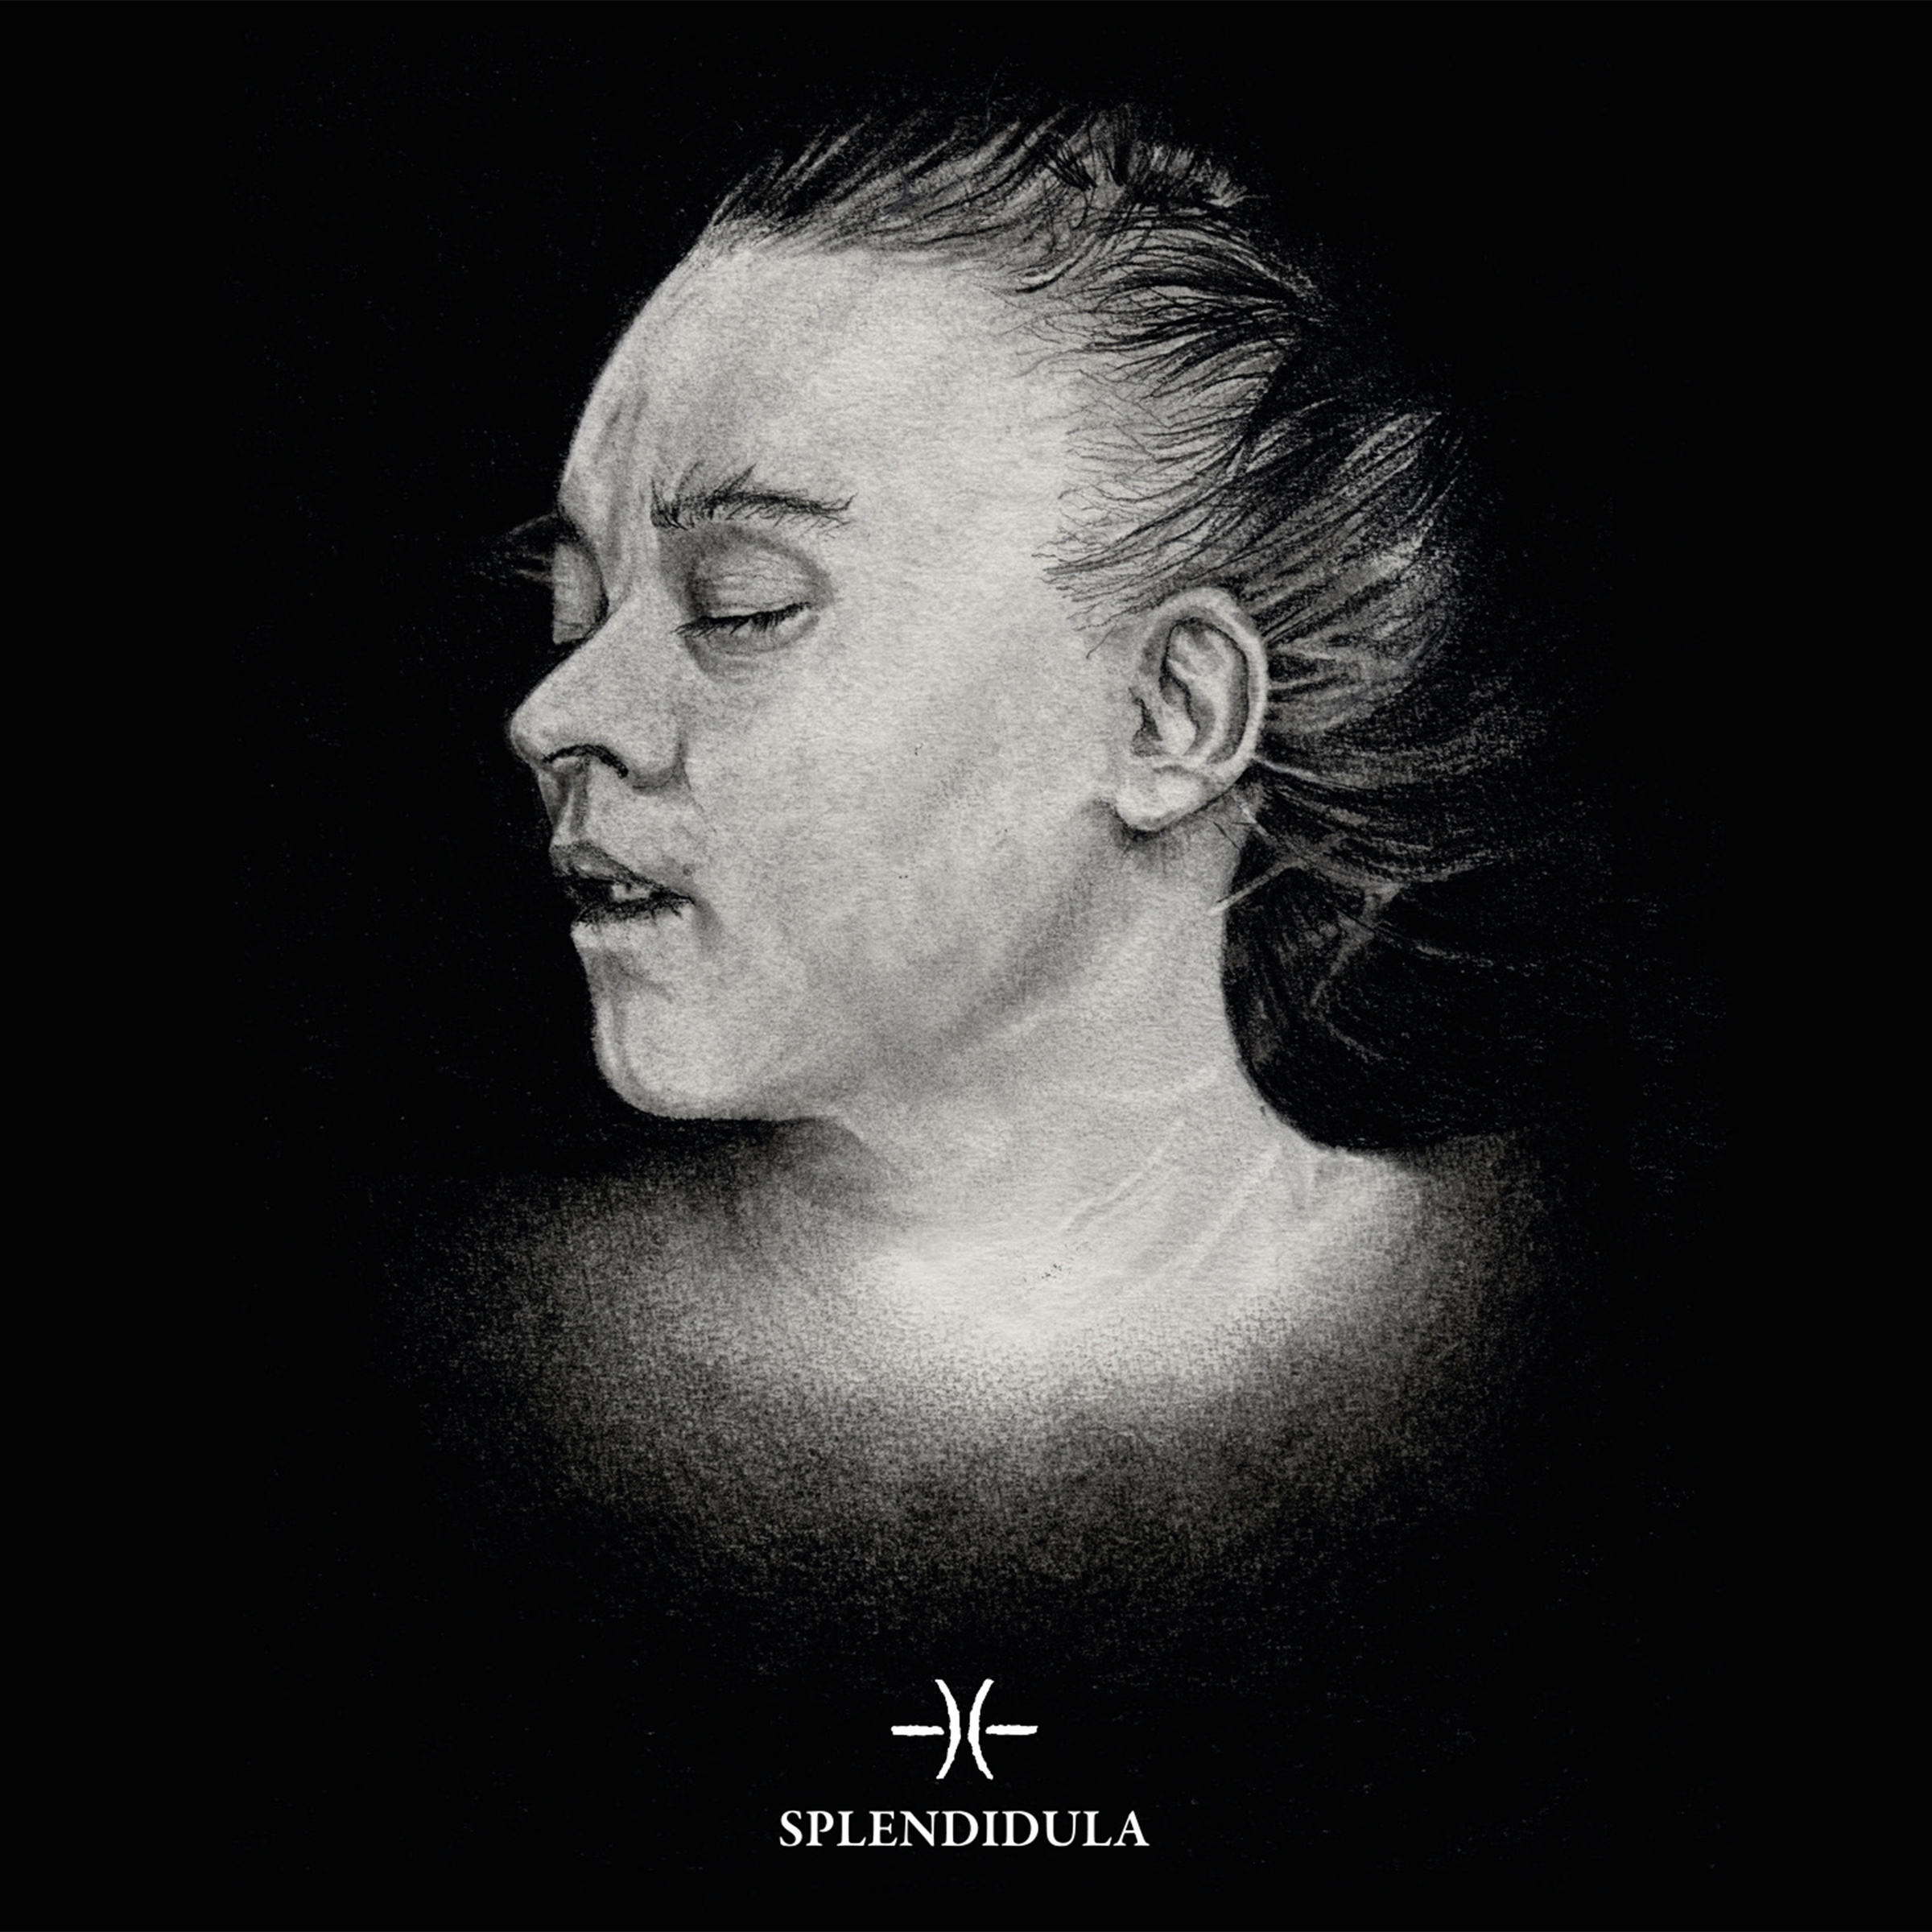 Splendidula Post Mortem albumcover